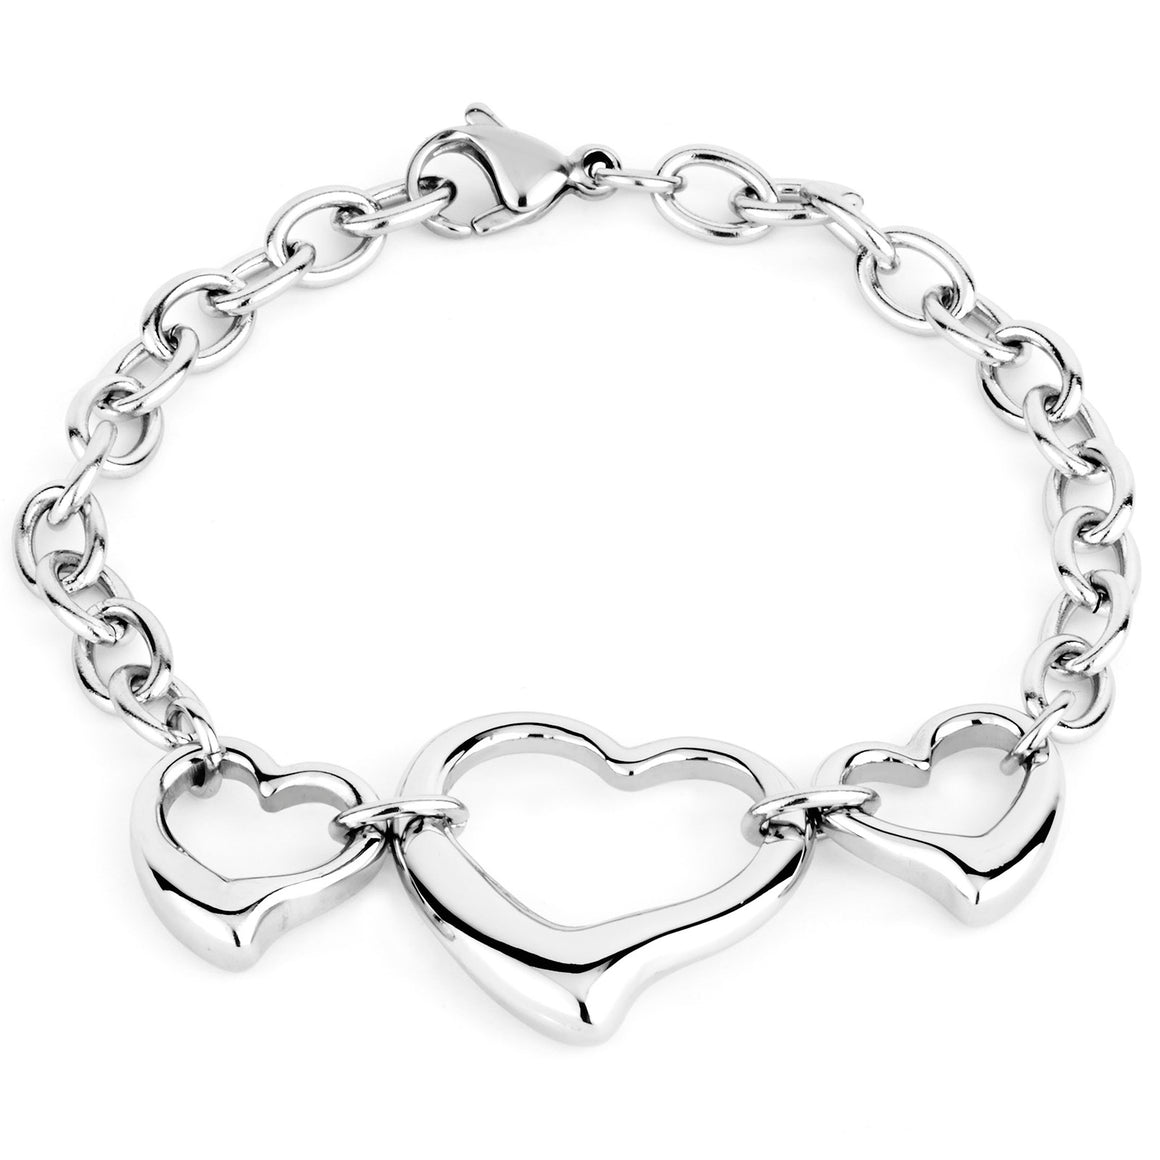 ELYA Women's High Polished Three Linked Open Hearts Chain Stainless Steel Bracelet